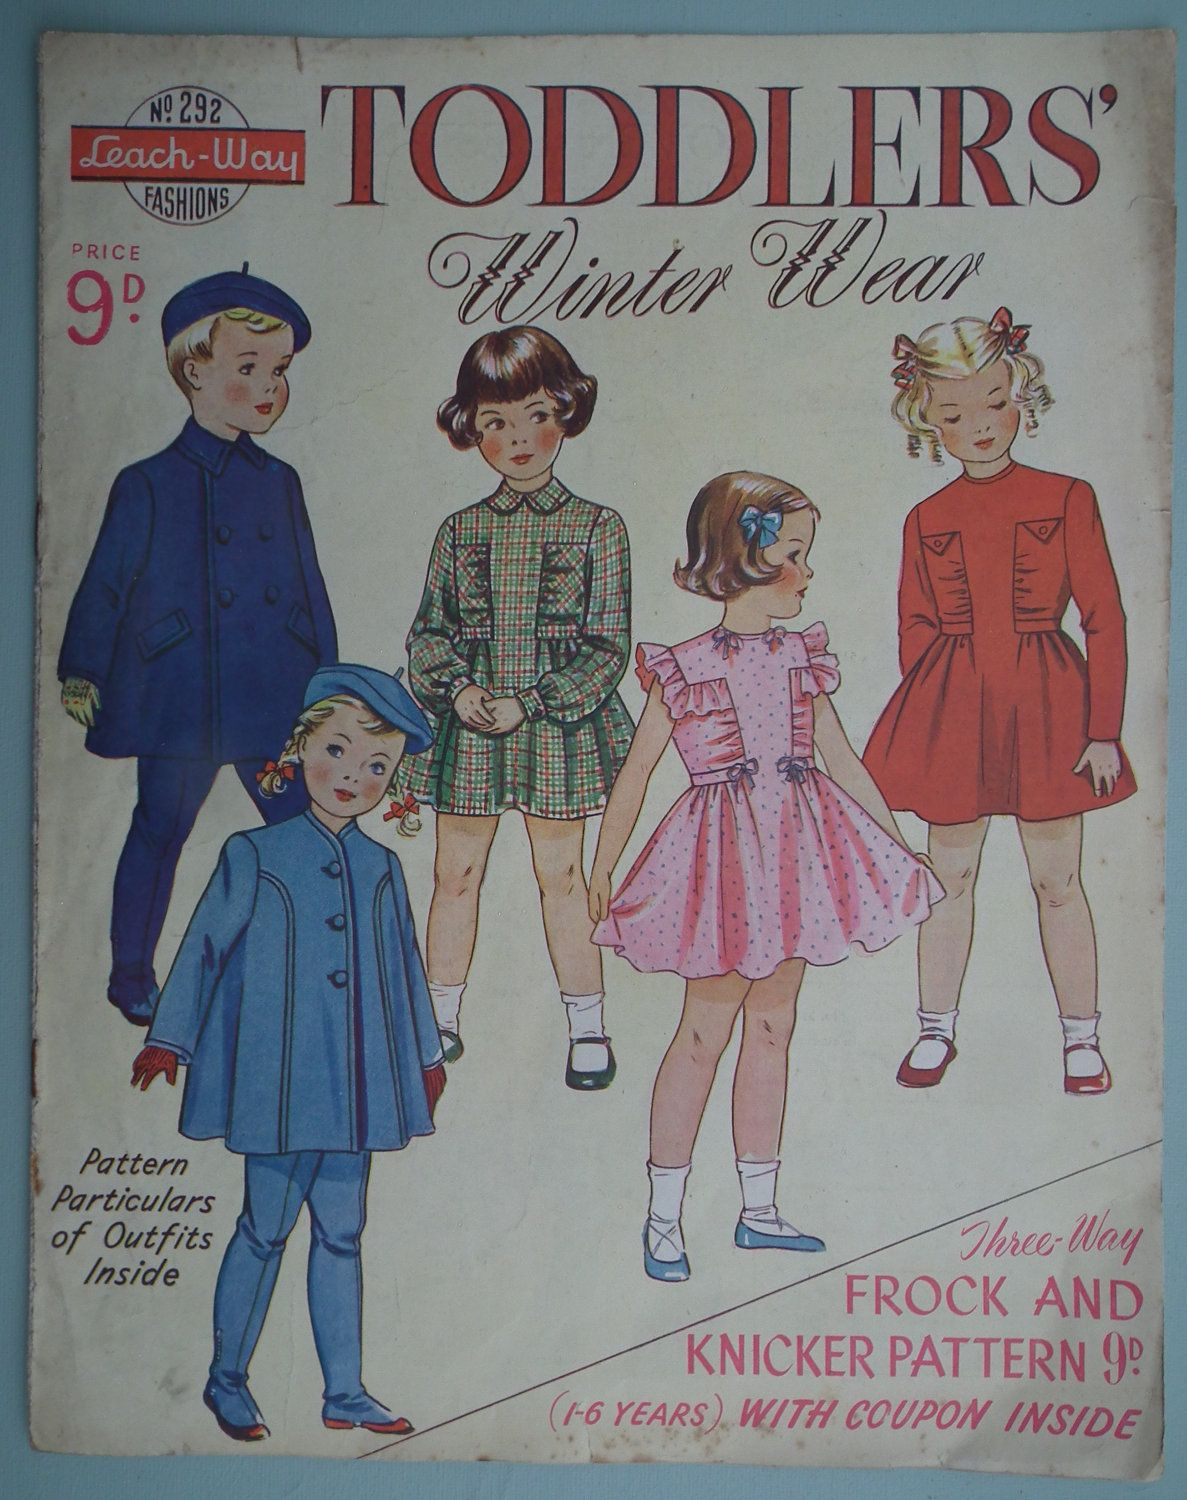 Vintage sewing patterns catalog 1940s 1950s childrens clothing childrens patterns for sewing uk vintage sewing patterns catalog 1940s 1950s childrens clothing jeuxipadfo Gallery